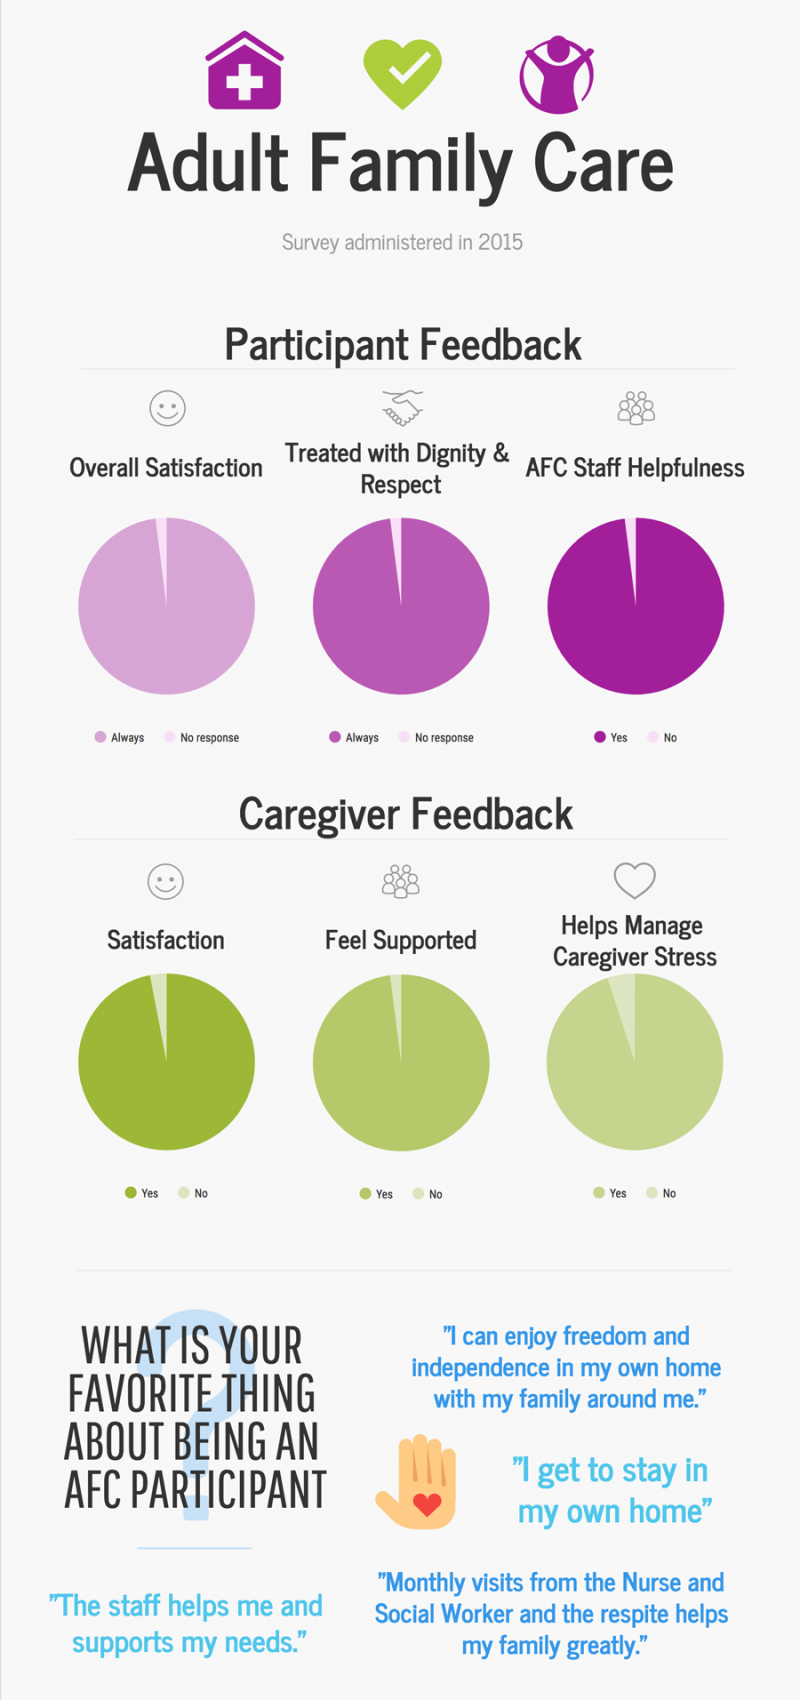 Adult Family Care Survey graph showing Participant and Caregiver Feedback pie charts with almost entirely positive feedback for all measures.